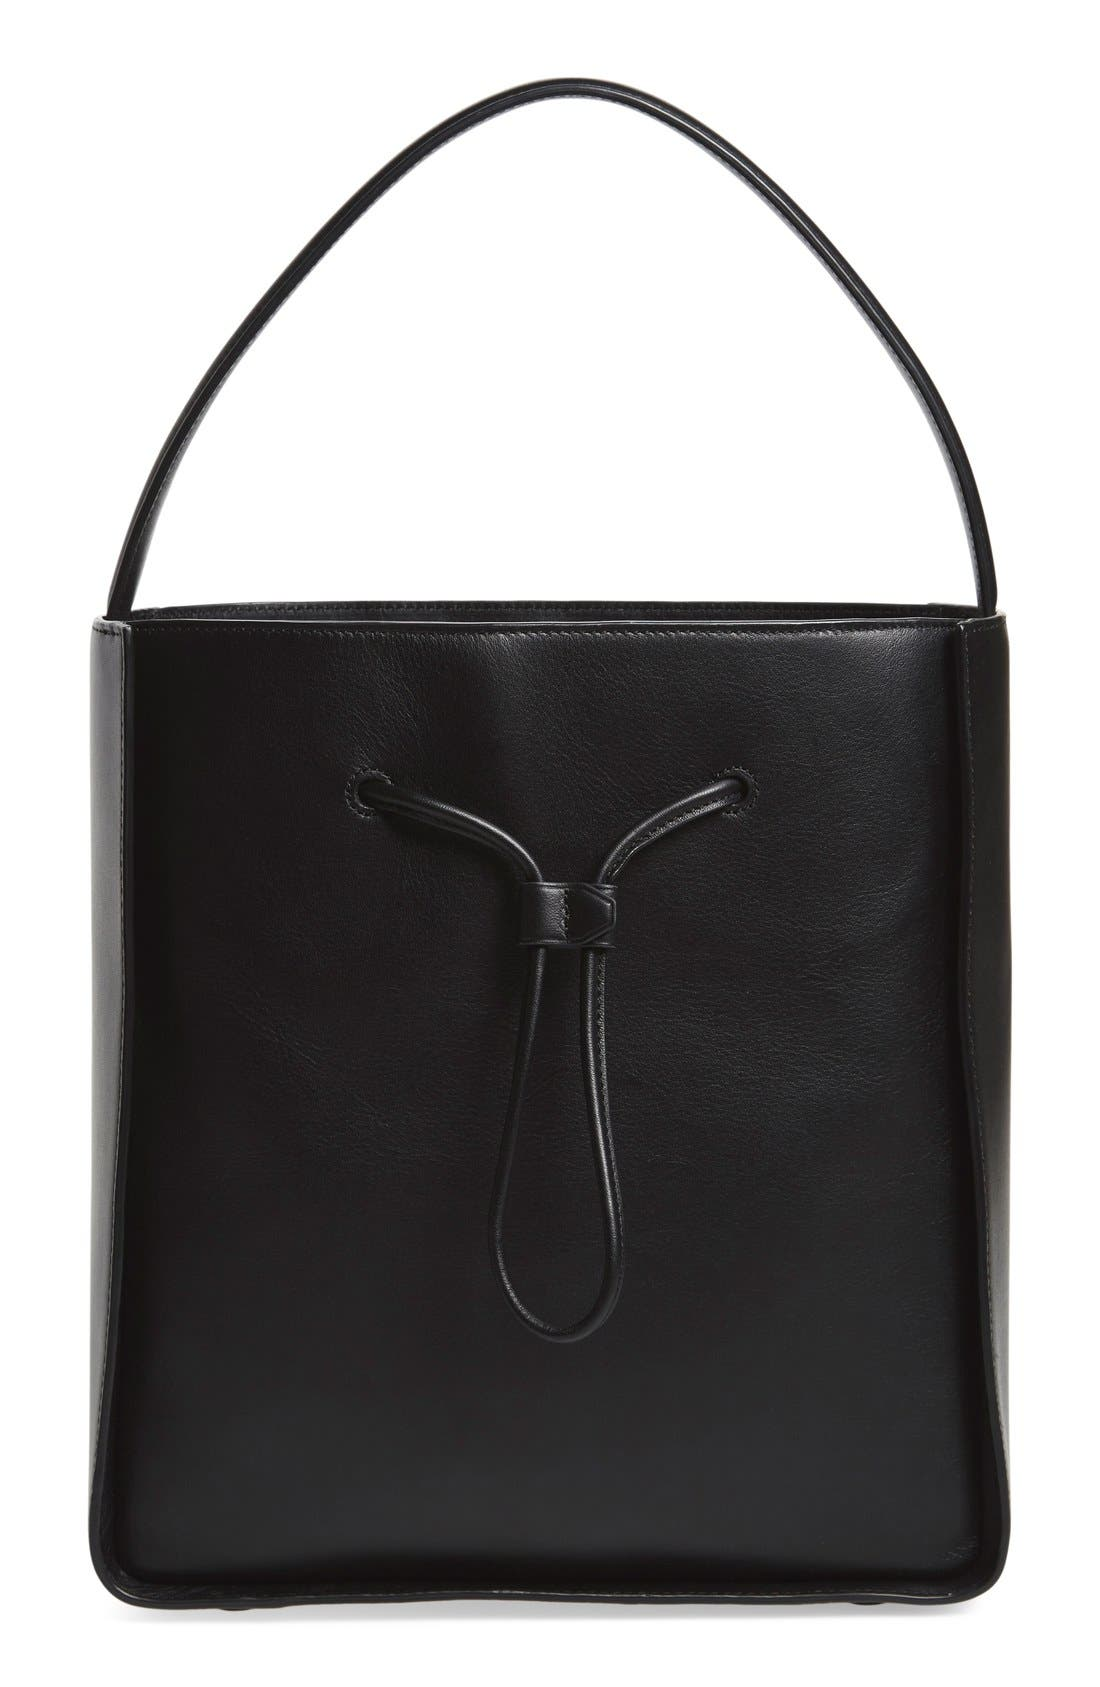 Alternate Image 1 Selected - 3.1 Phillip Lim 'Large Soleil' Bucket Bag